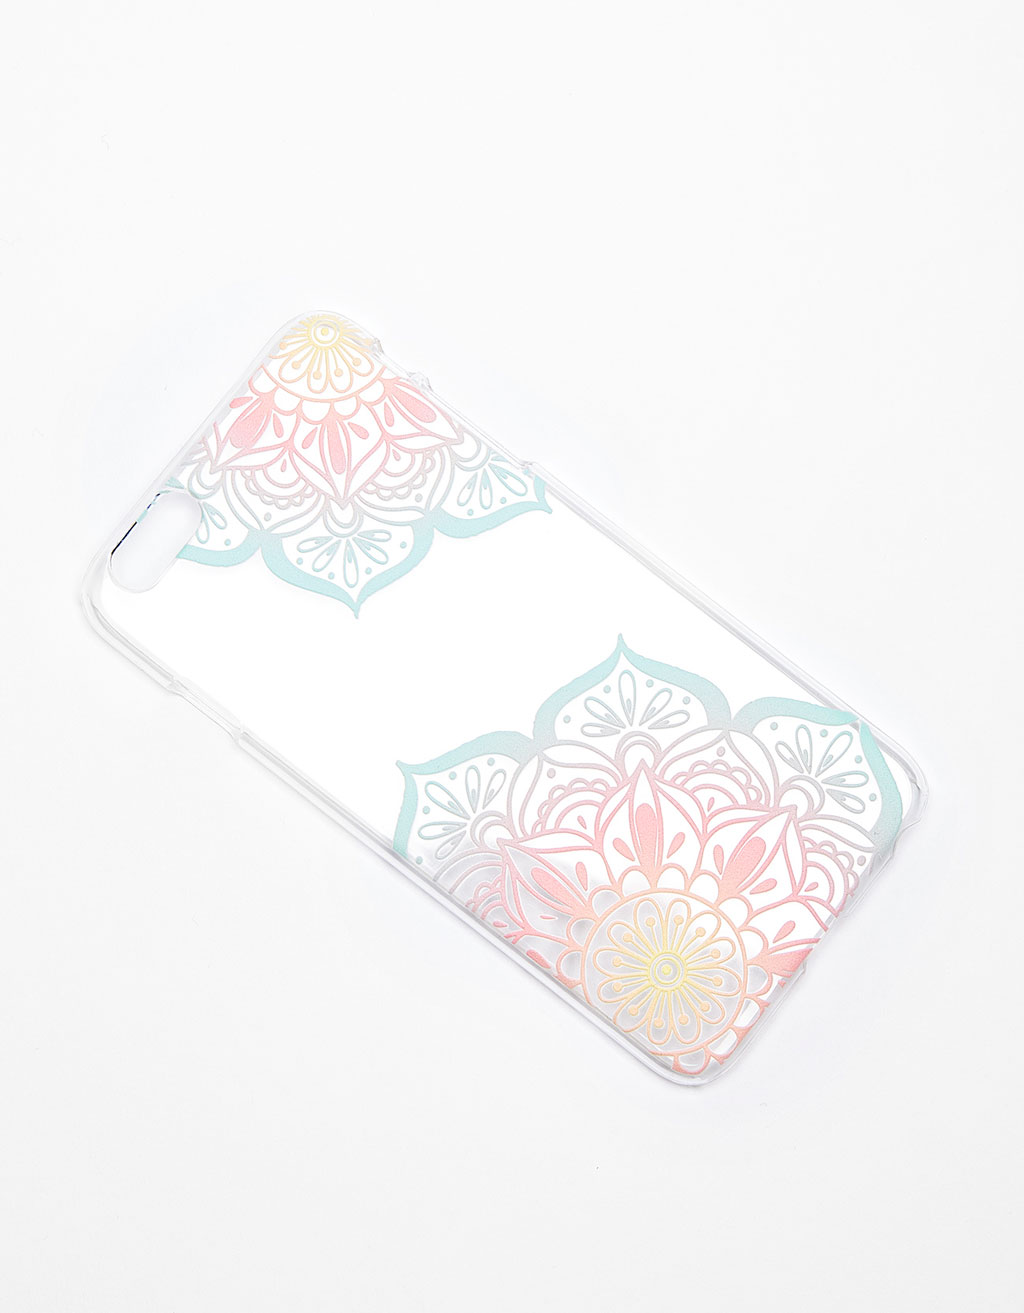 Pastel iPhone 6 plus case with raised pattern